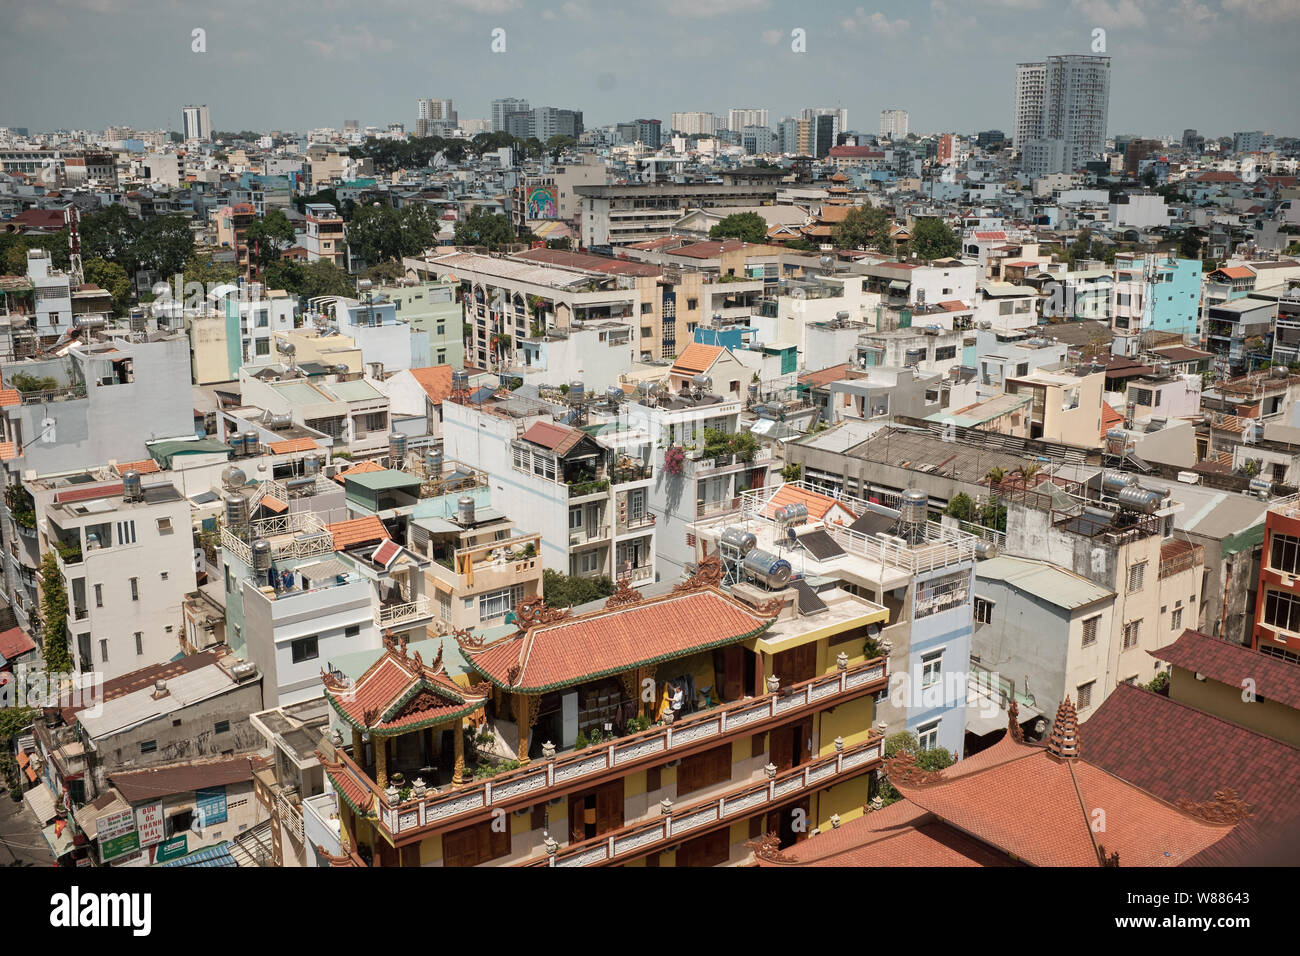 Vietnam Capital City High Resolution Stock Photography And Images Alamy